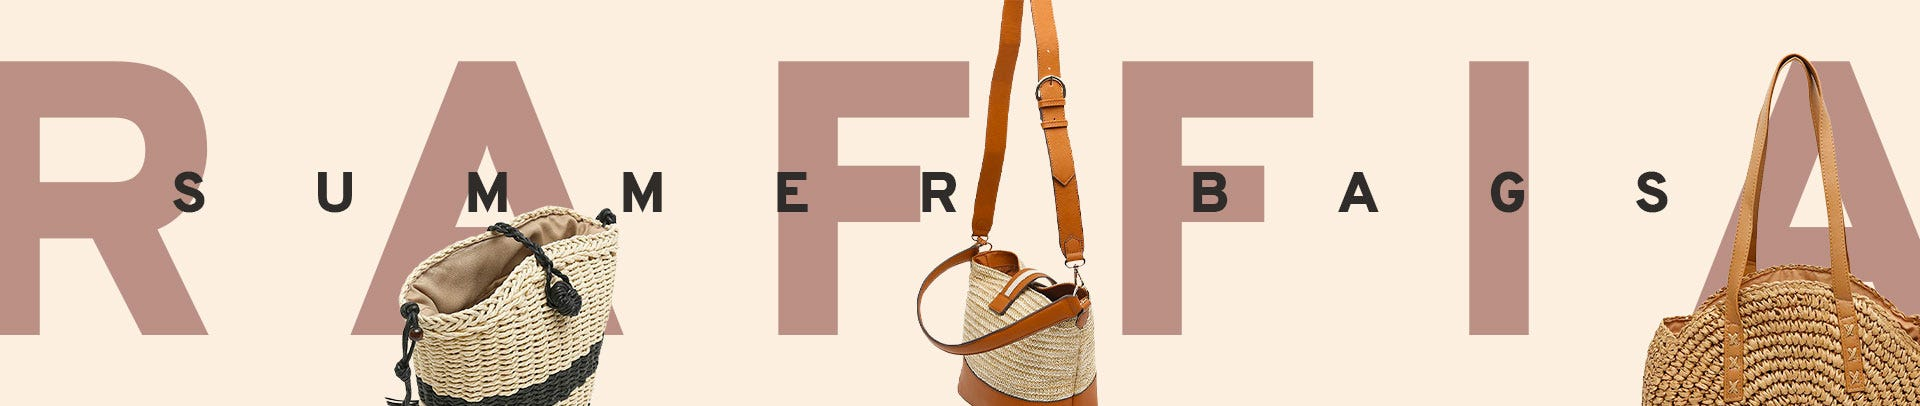 Summer bags and raffia by Misako